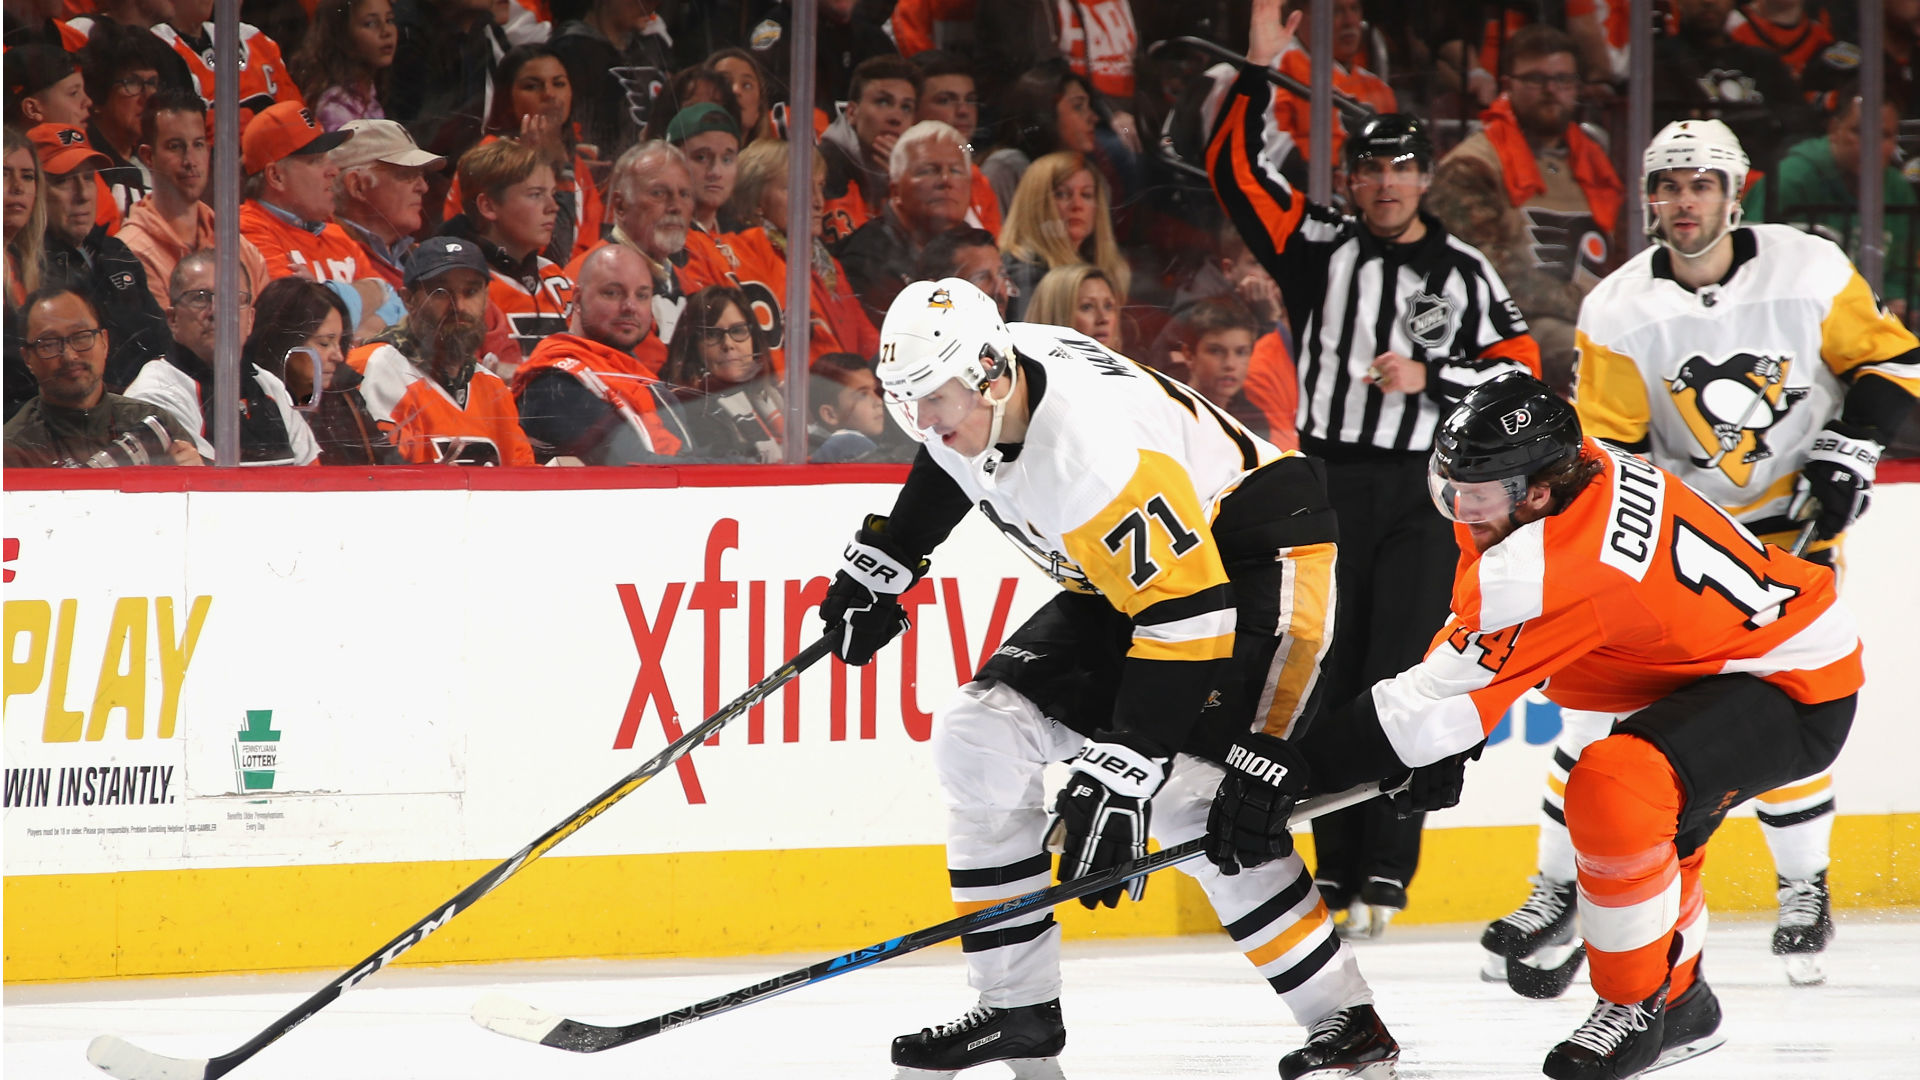 Pittsburgh Penguins vs. Philadelphia Flyers, 4-18